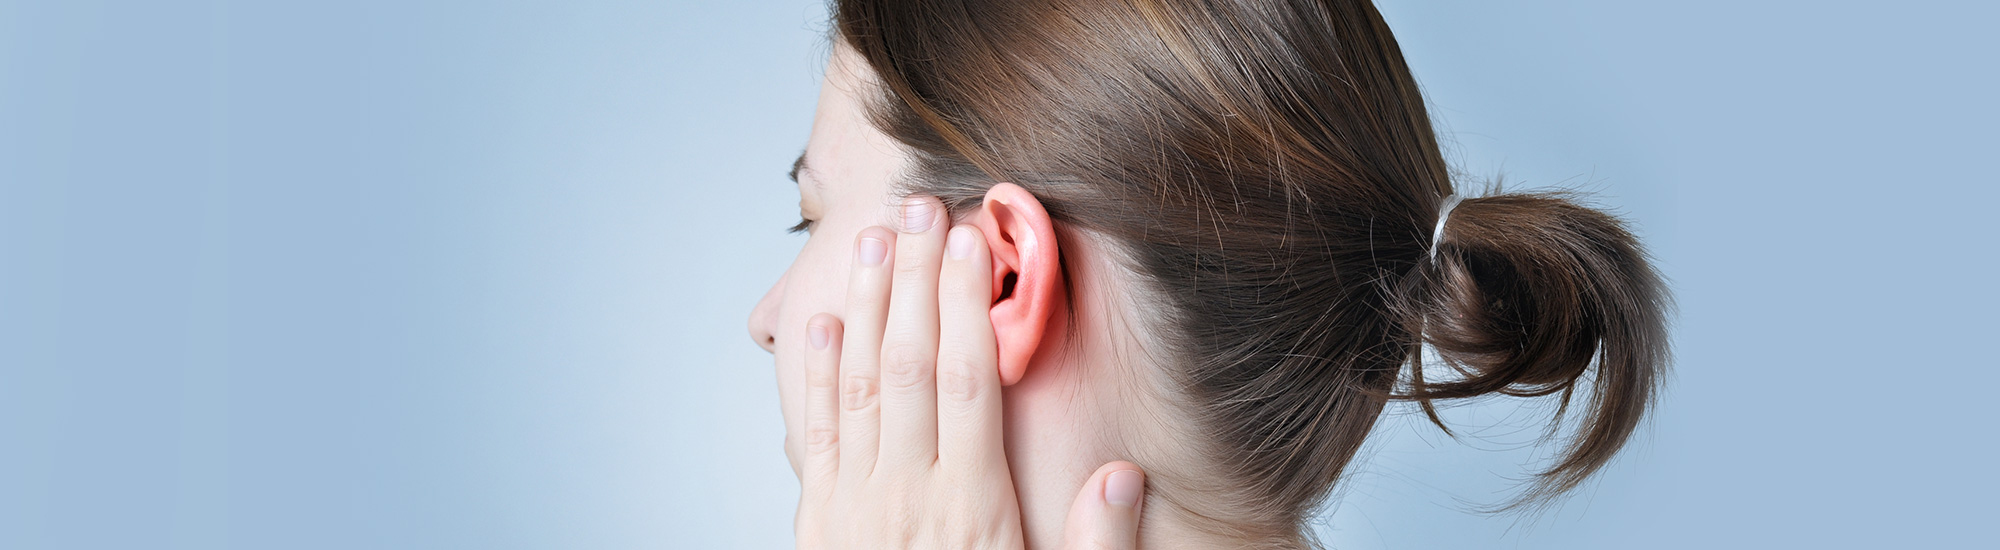 Ayurvedic treatment for Ear infection FAQs